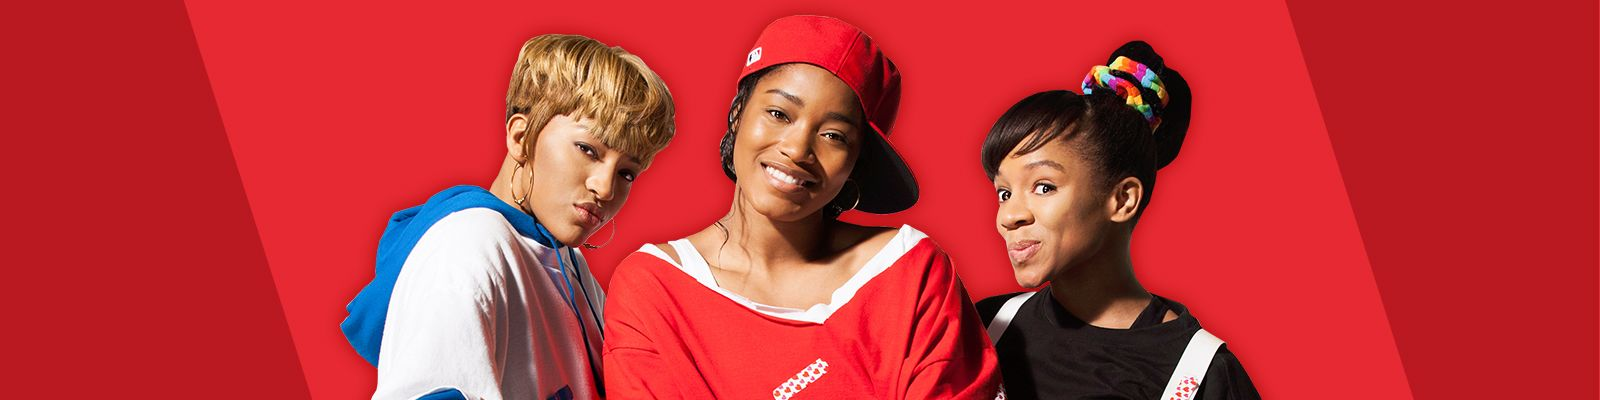 Crazysexycool tlc movie watch online